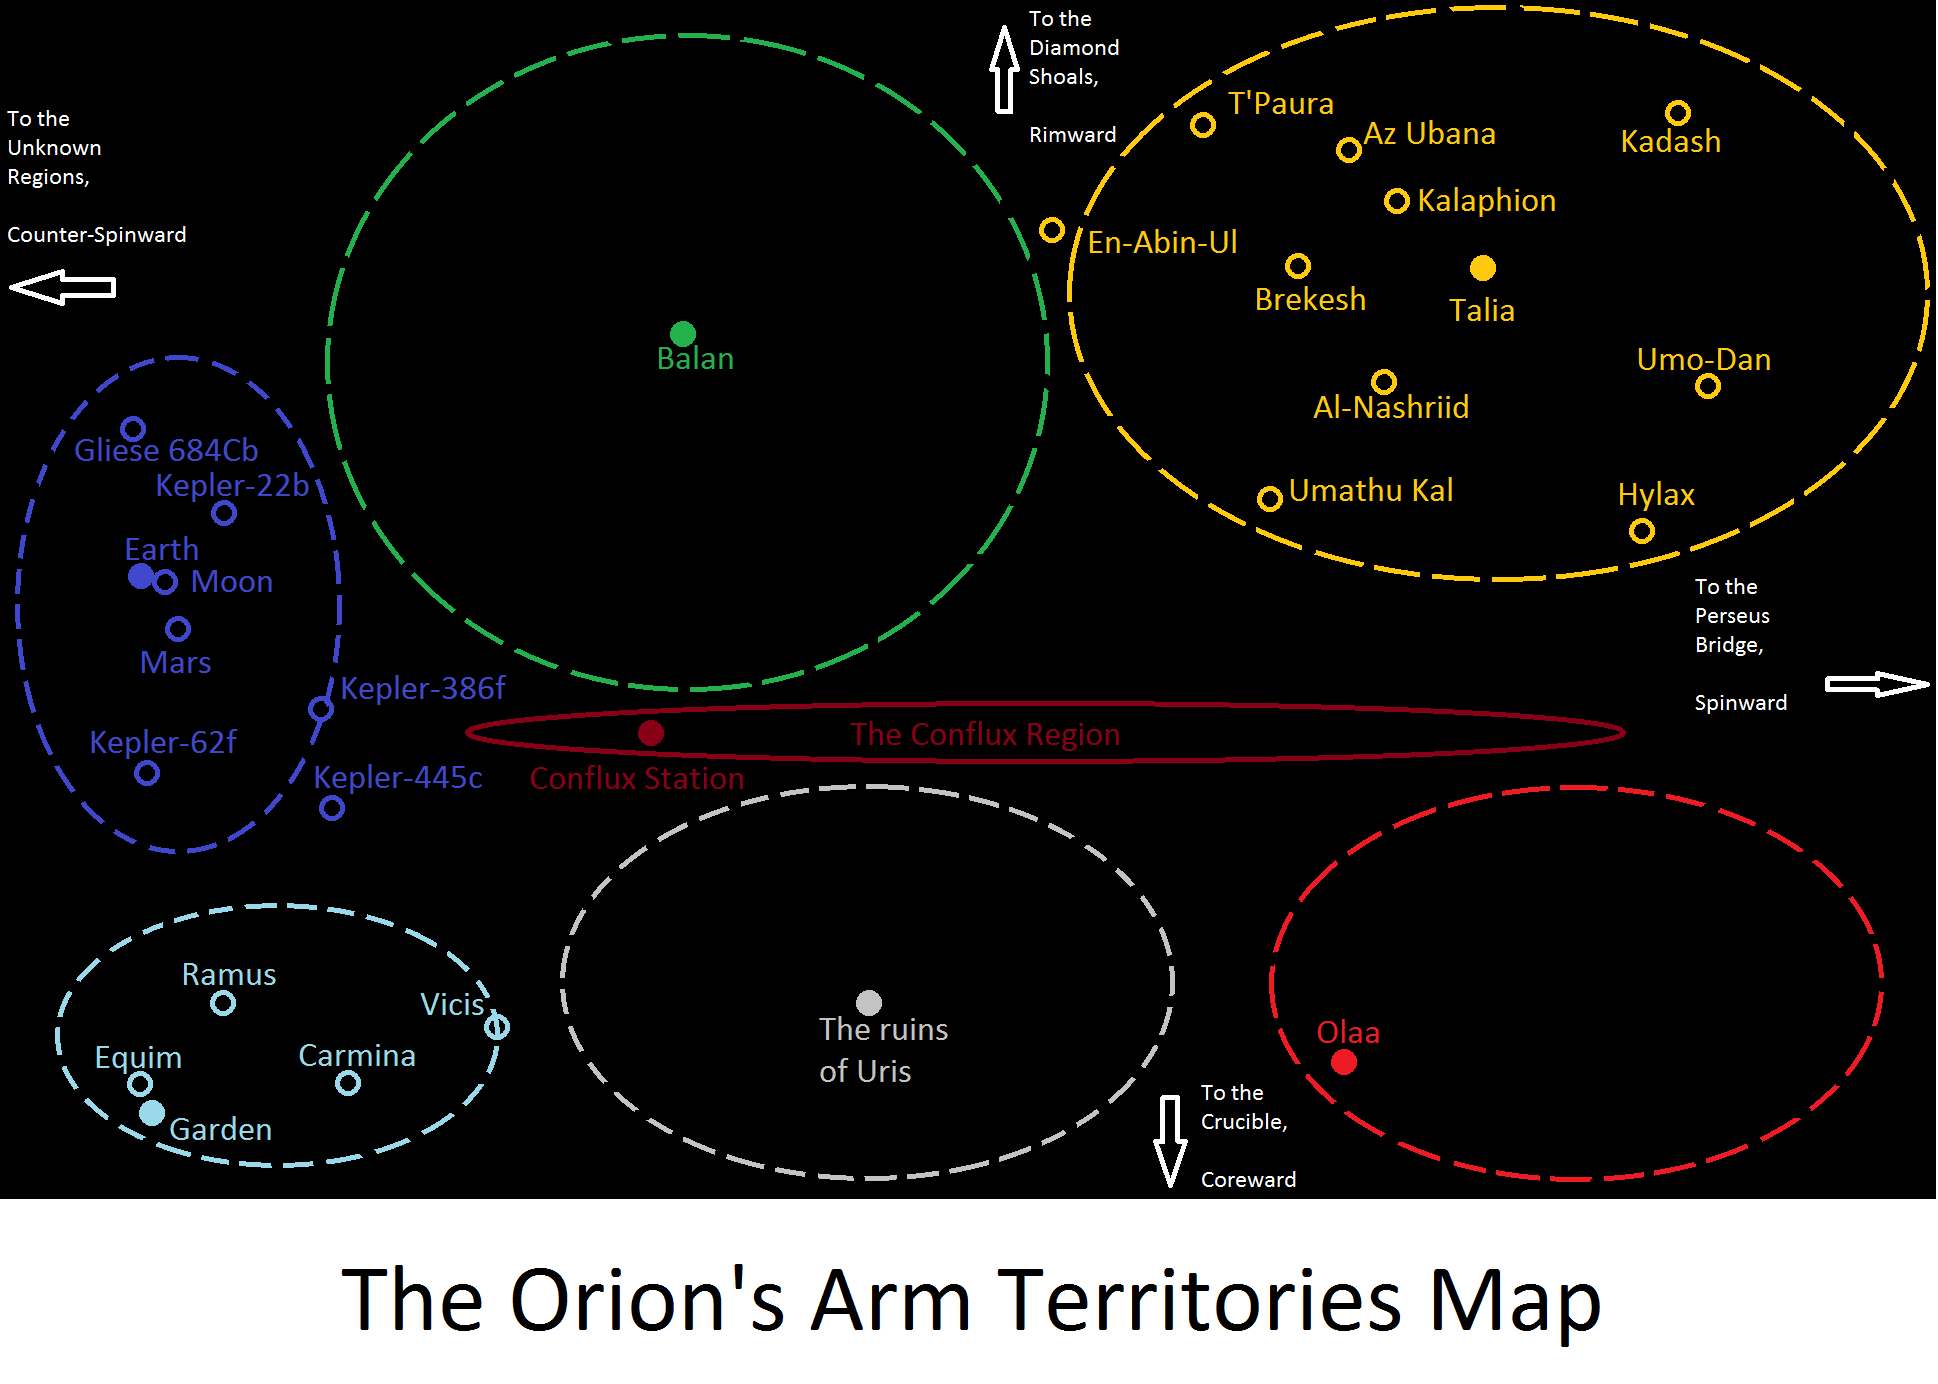 The_Orion_s_Arm_Territories_Map.png